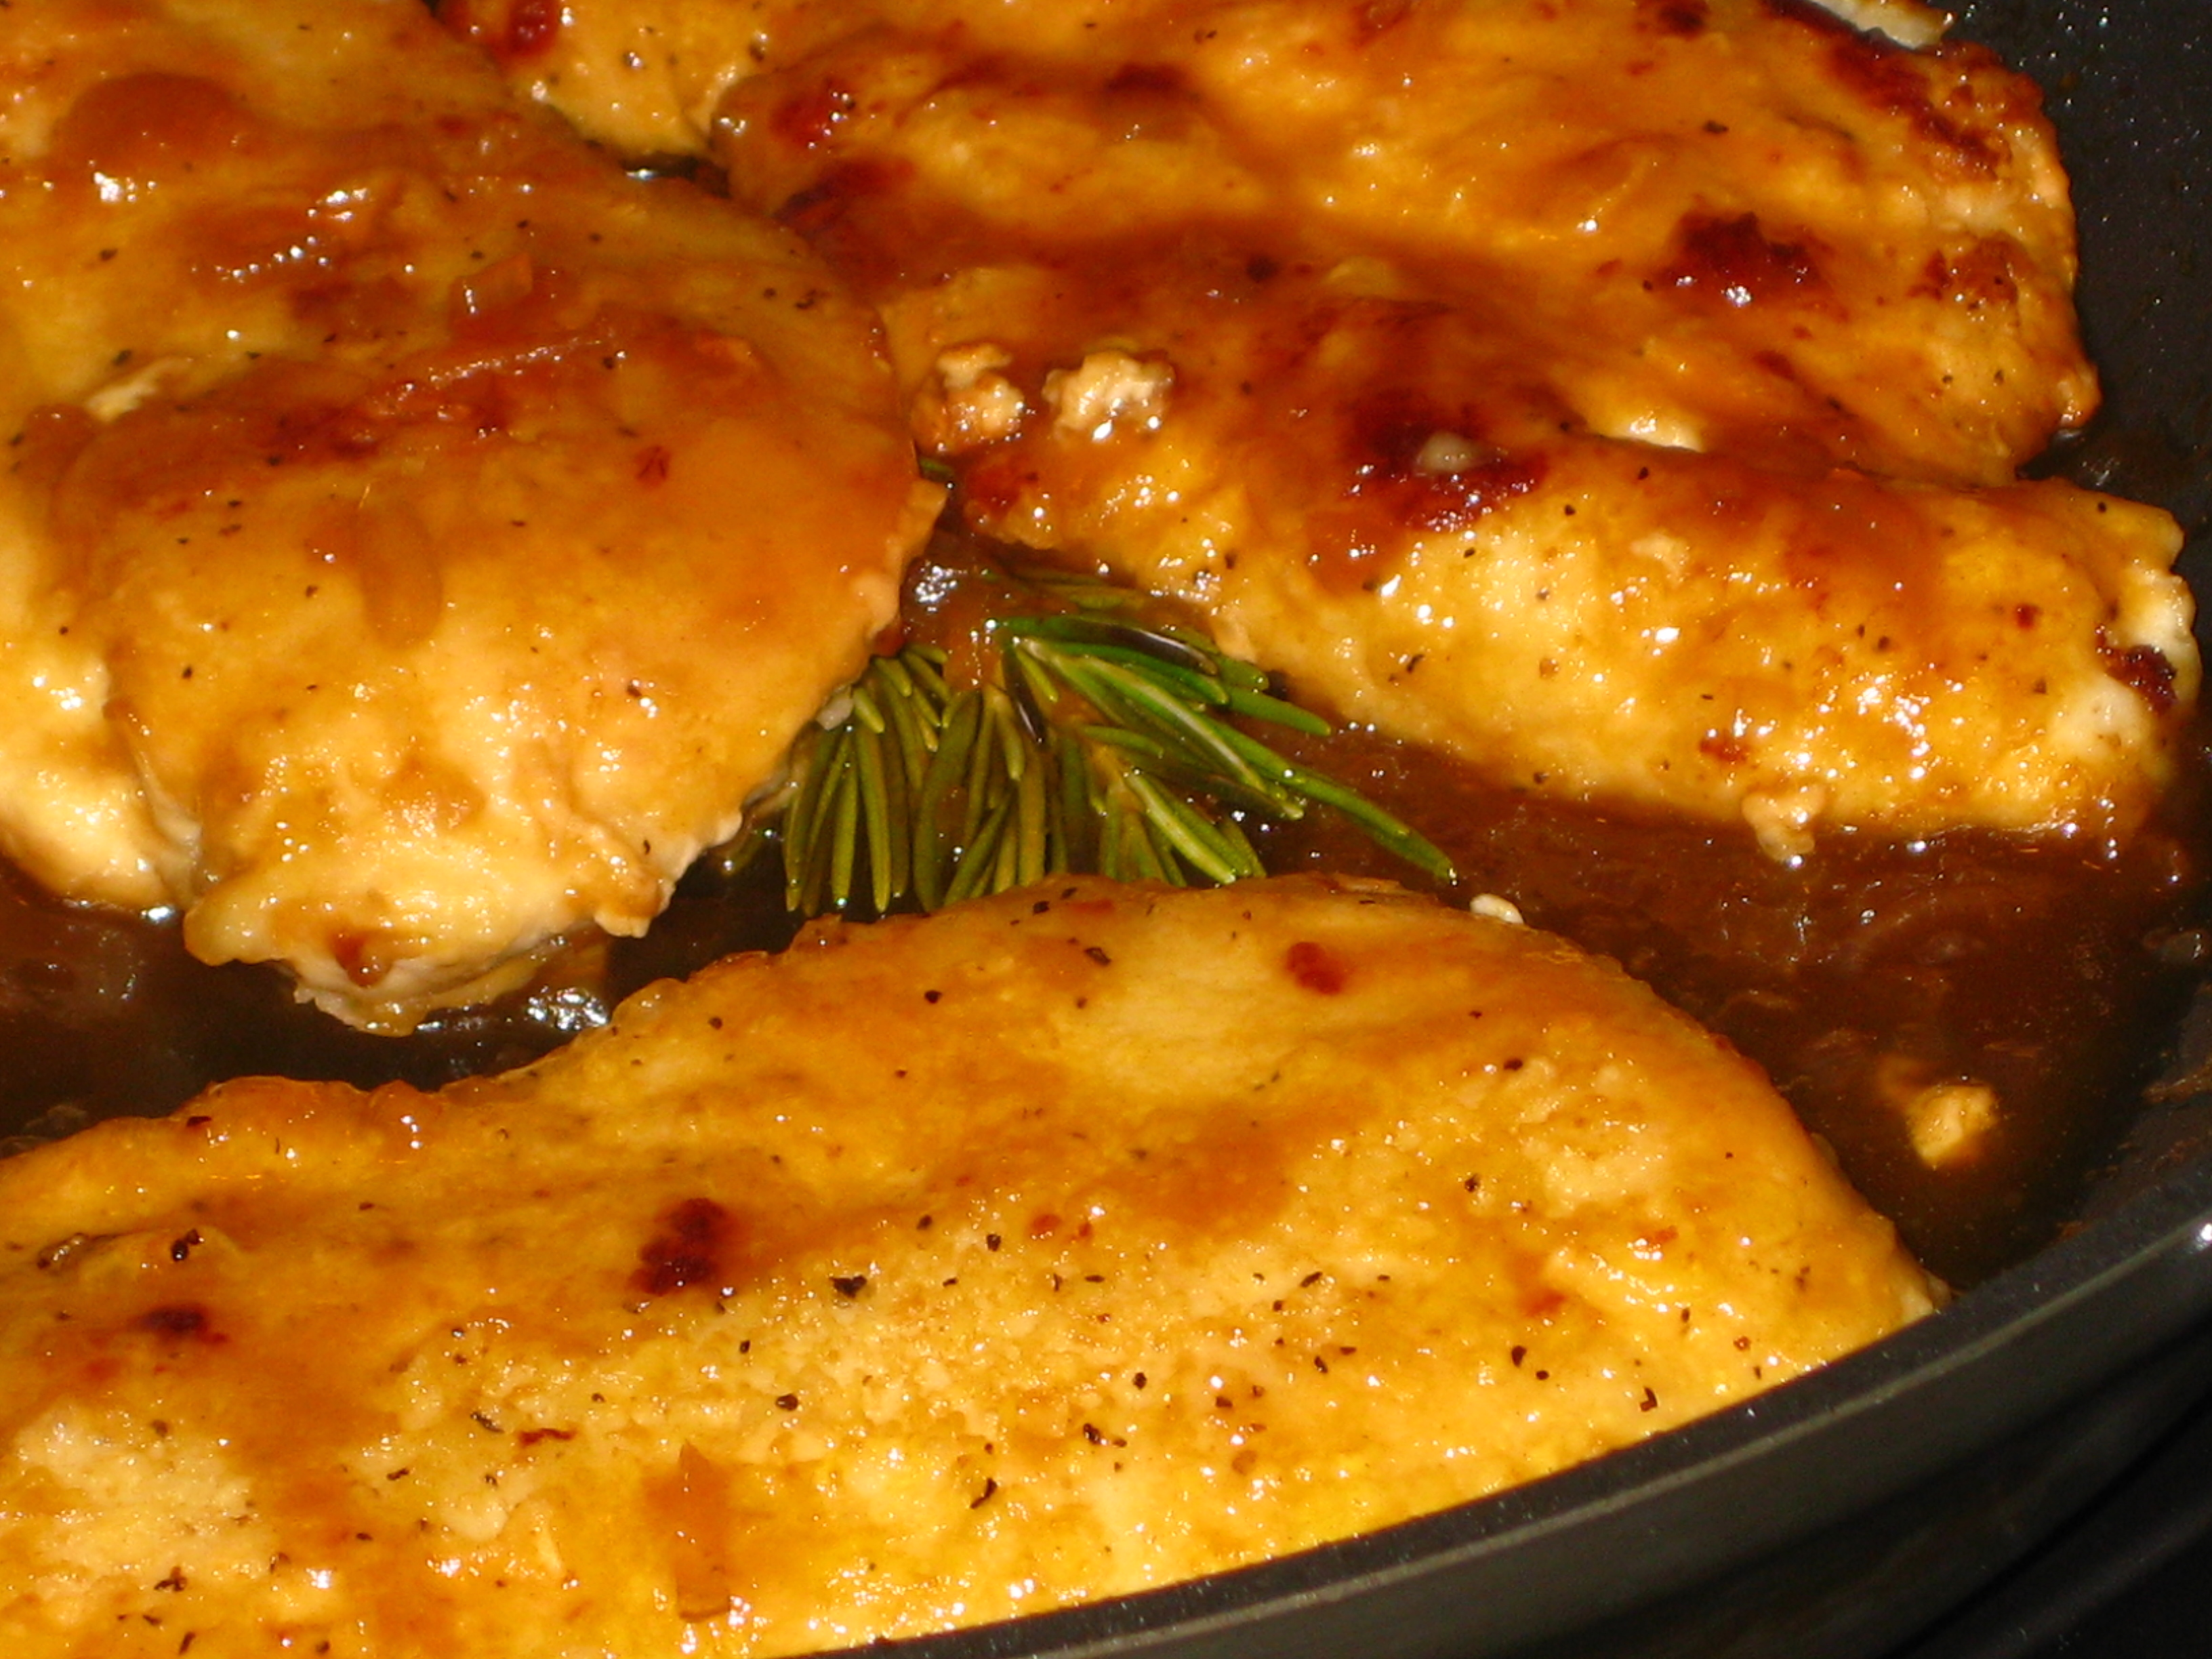 Chicken Breasts in Orange Sauce